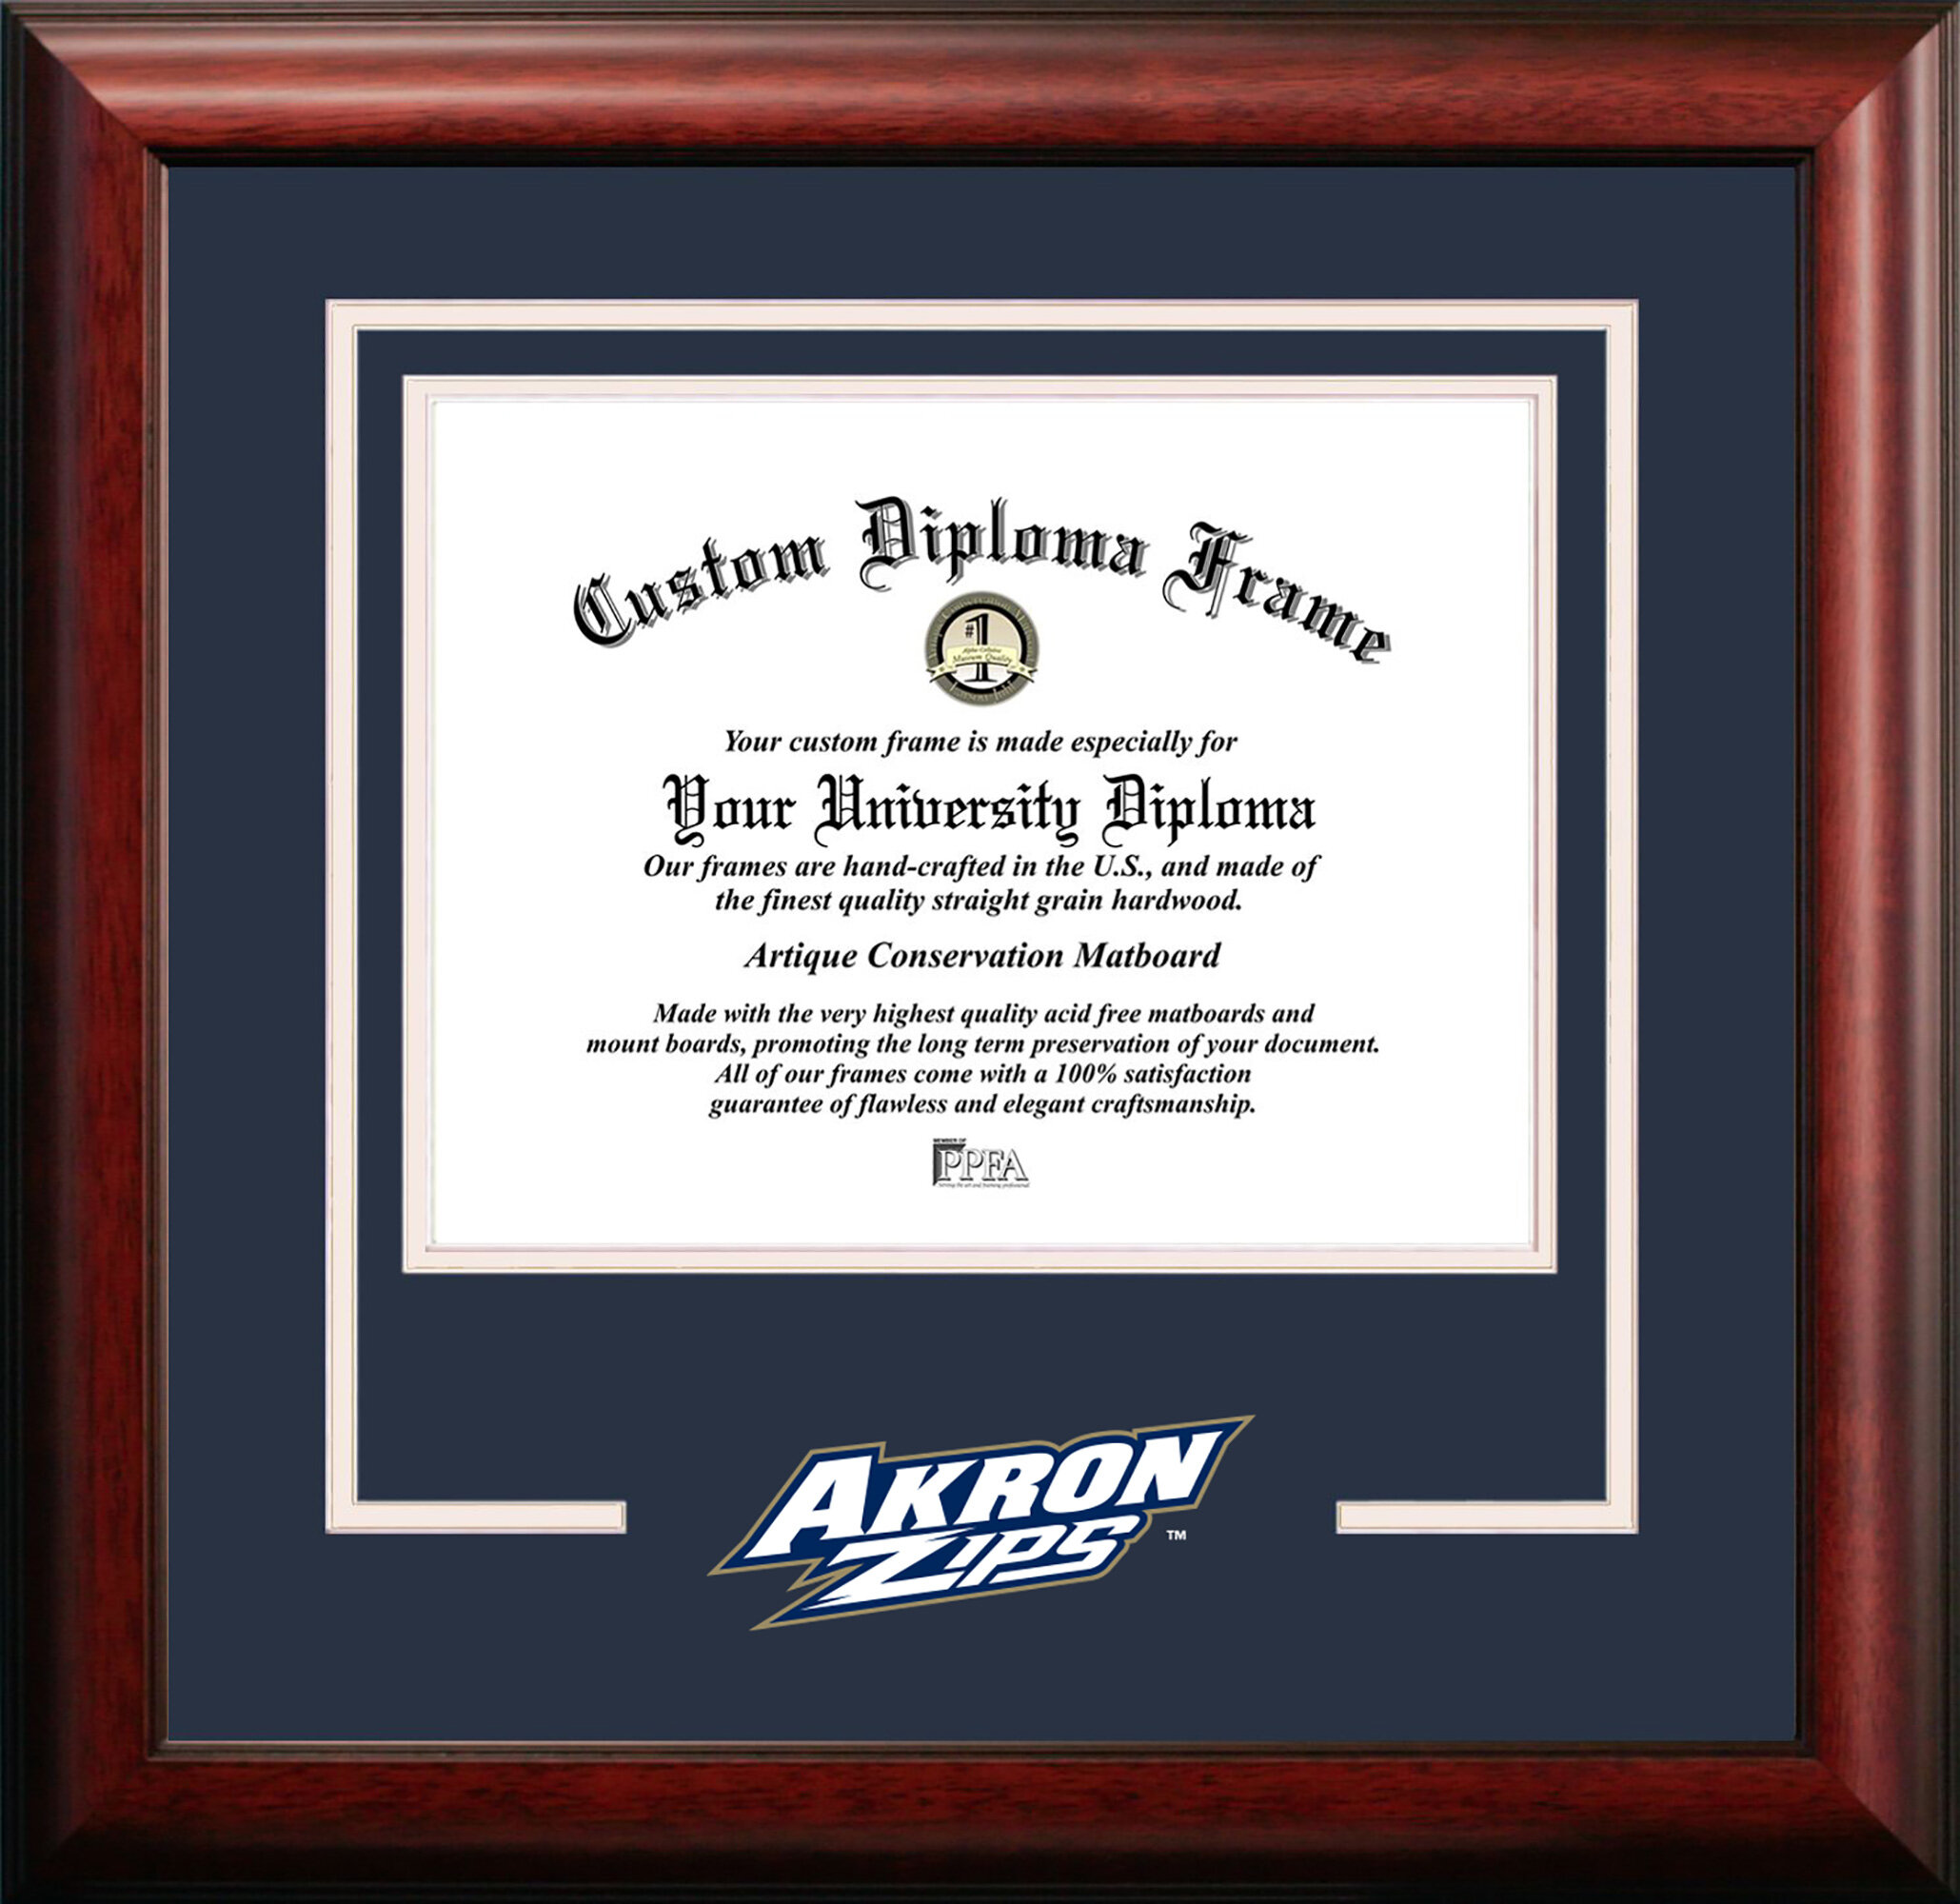 Campus Images OH983SG University of Akron Zips Spirit Graduate Diploma Frame with Lithograph Print 8.5 x 11